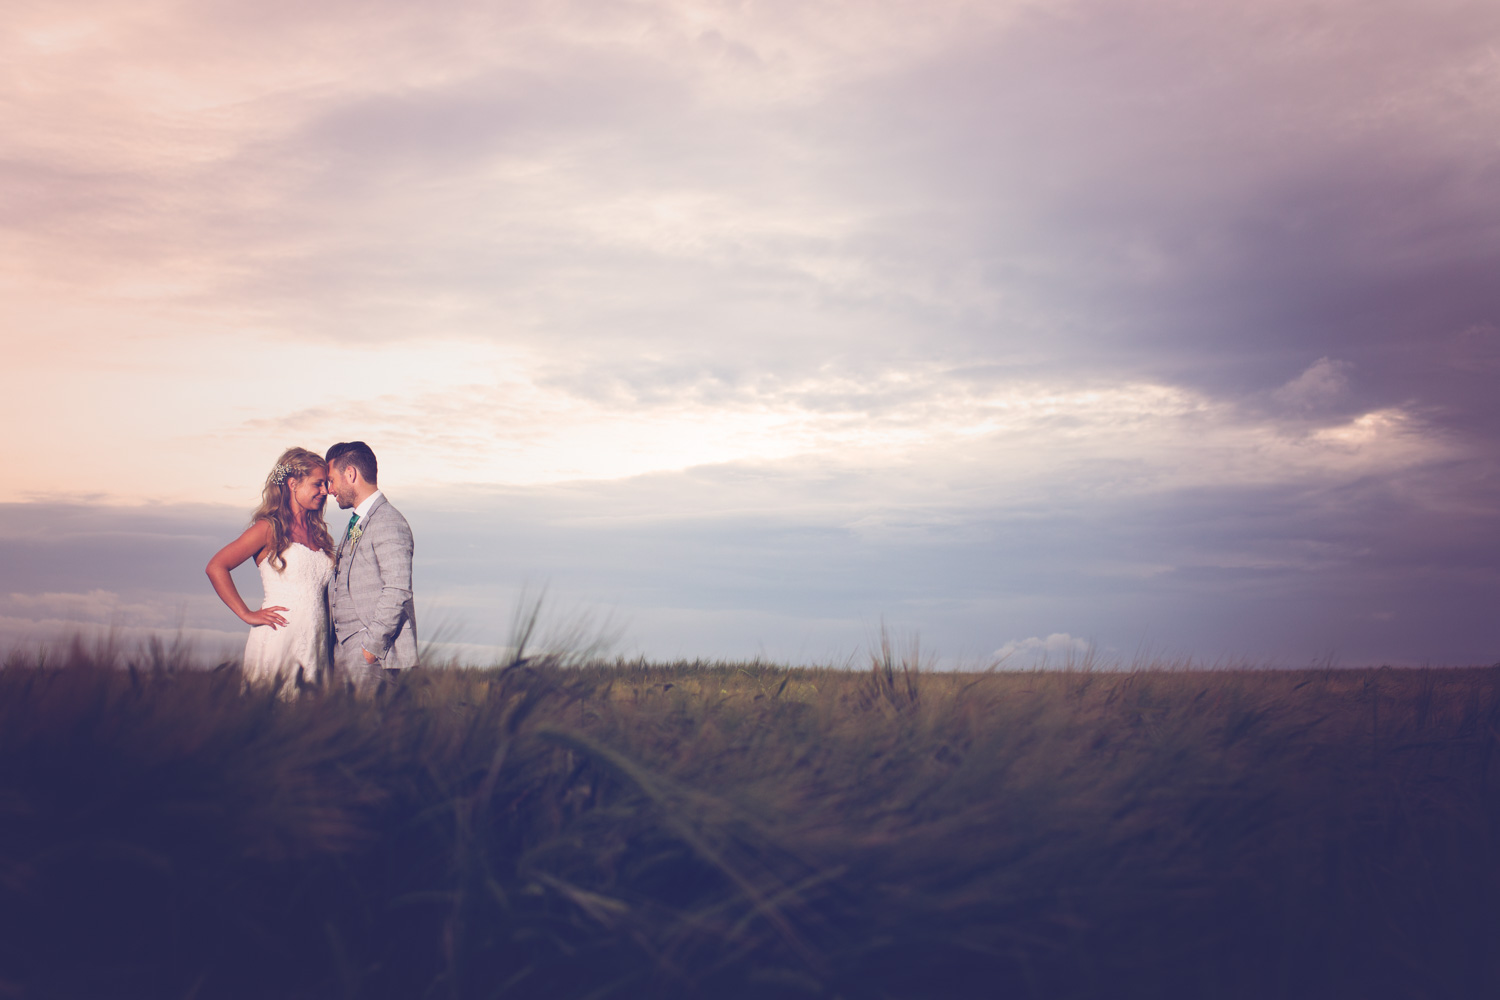 Mark_Barnes_Northern_Ireland_Wedding_Photography_Becky_and_Tom-66.jpg